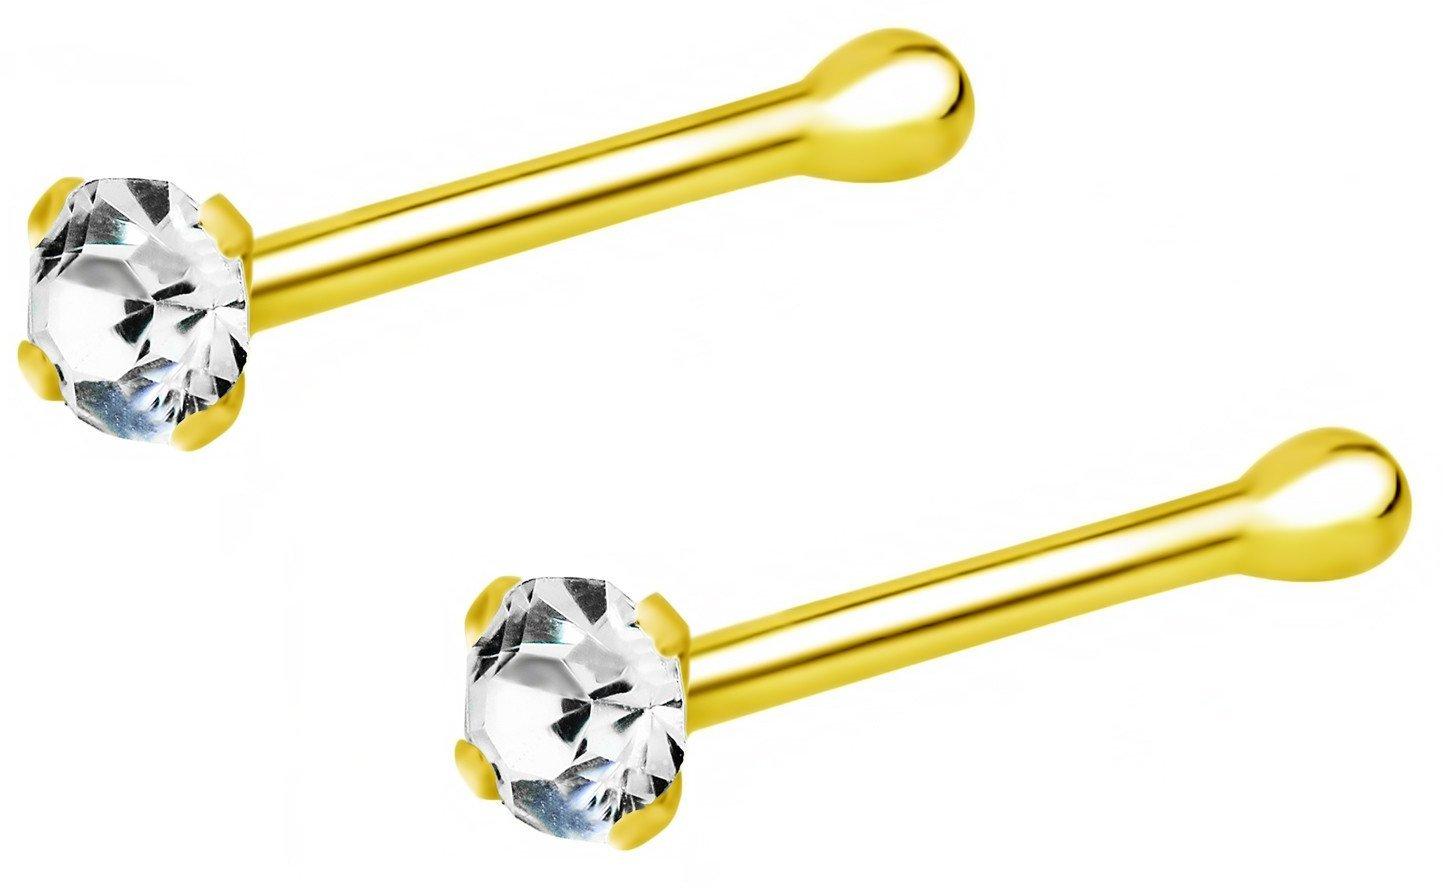 Forbidden Body Jewelry Set of 2: 22g 18k Gold Plated Sterling Silver CZ Simulated Diamond Micro Nose Stud, 1.5mm Crystal